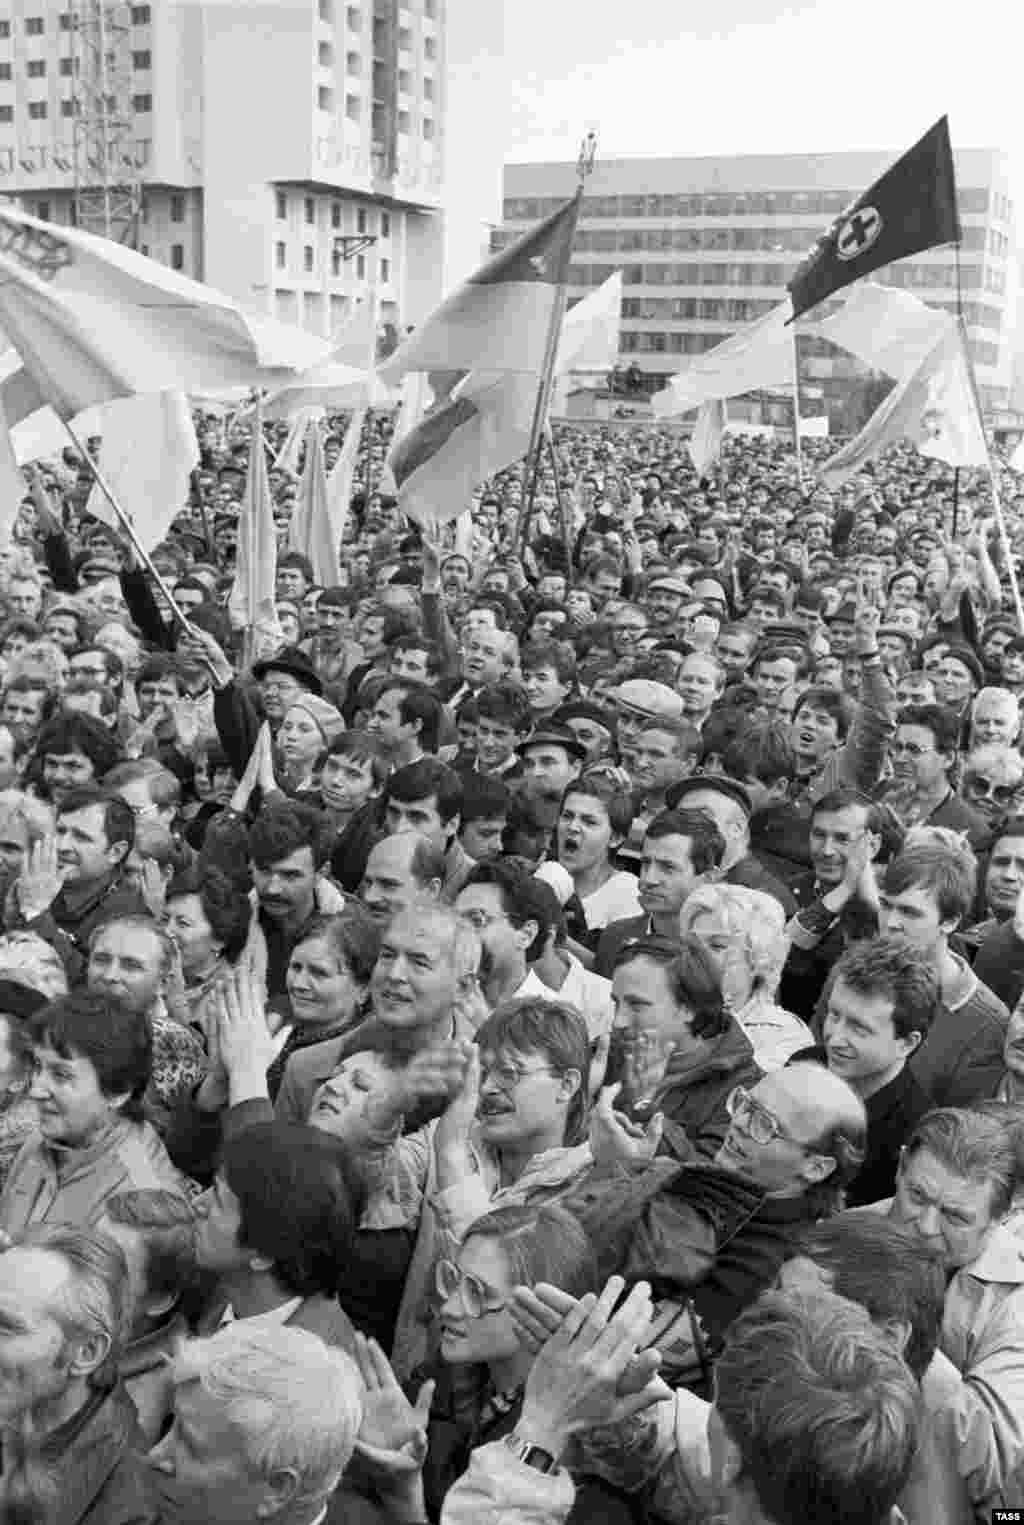 Demonstrators gather in Kyiv for a rally organized by the Ukrainian Popular Movement for Perestroika (RUKH) in support of national rebirth and independence on October 23, 1989.